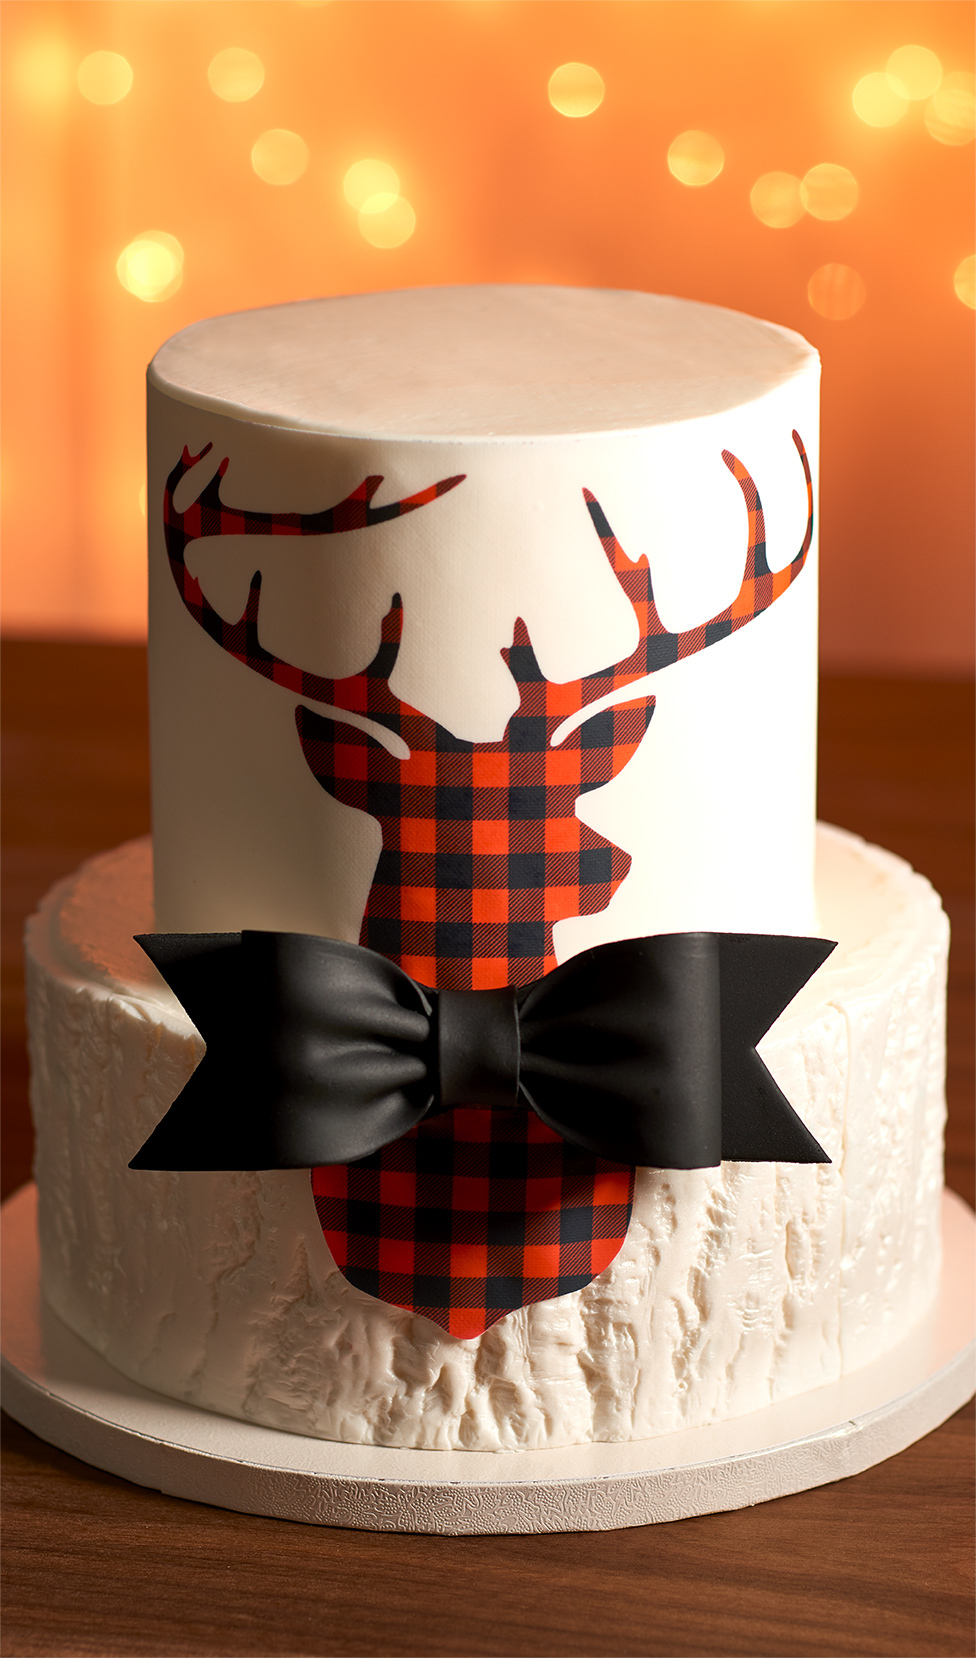 White Layered Cake Plaid Deer Bow